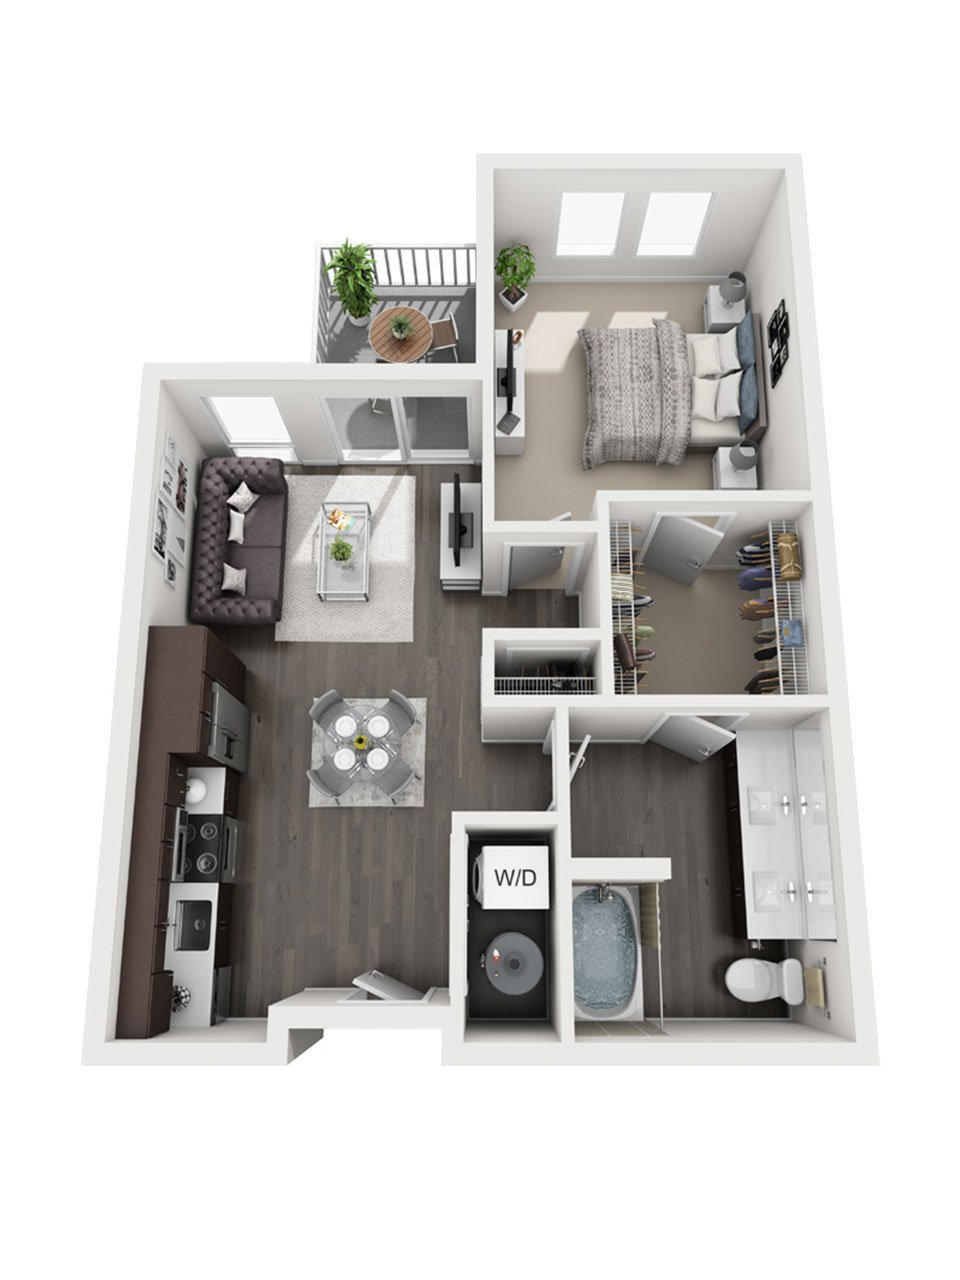 Plan 1 Bedroom – A8 | 1 Bath